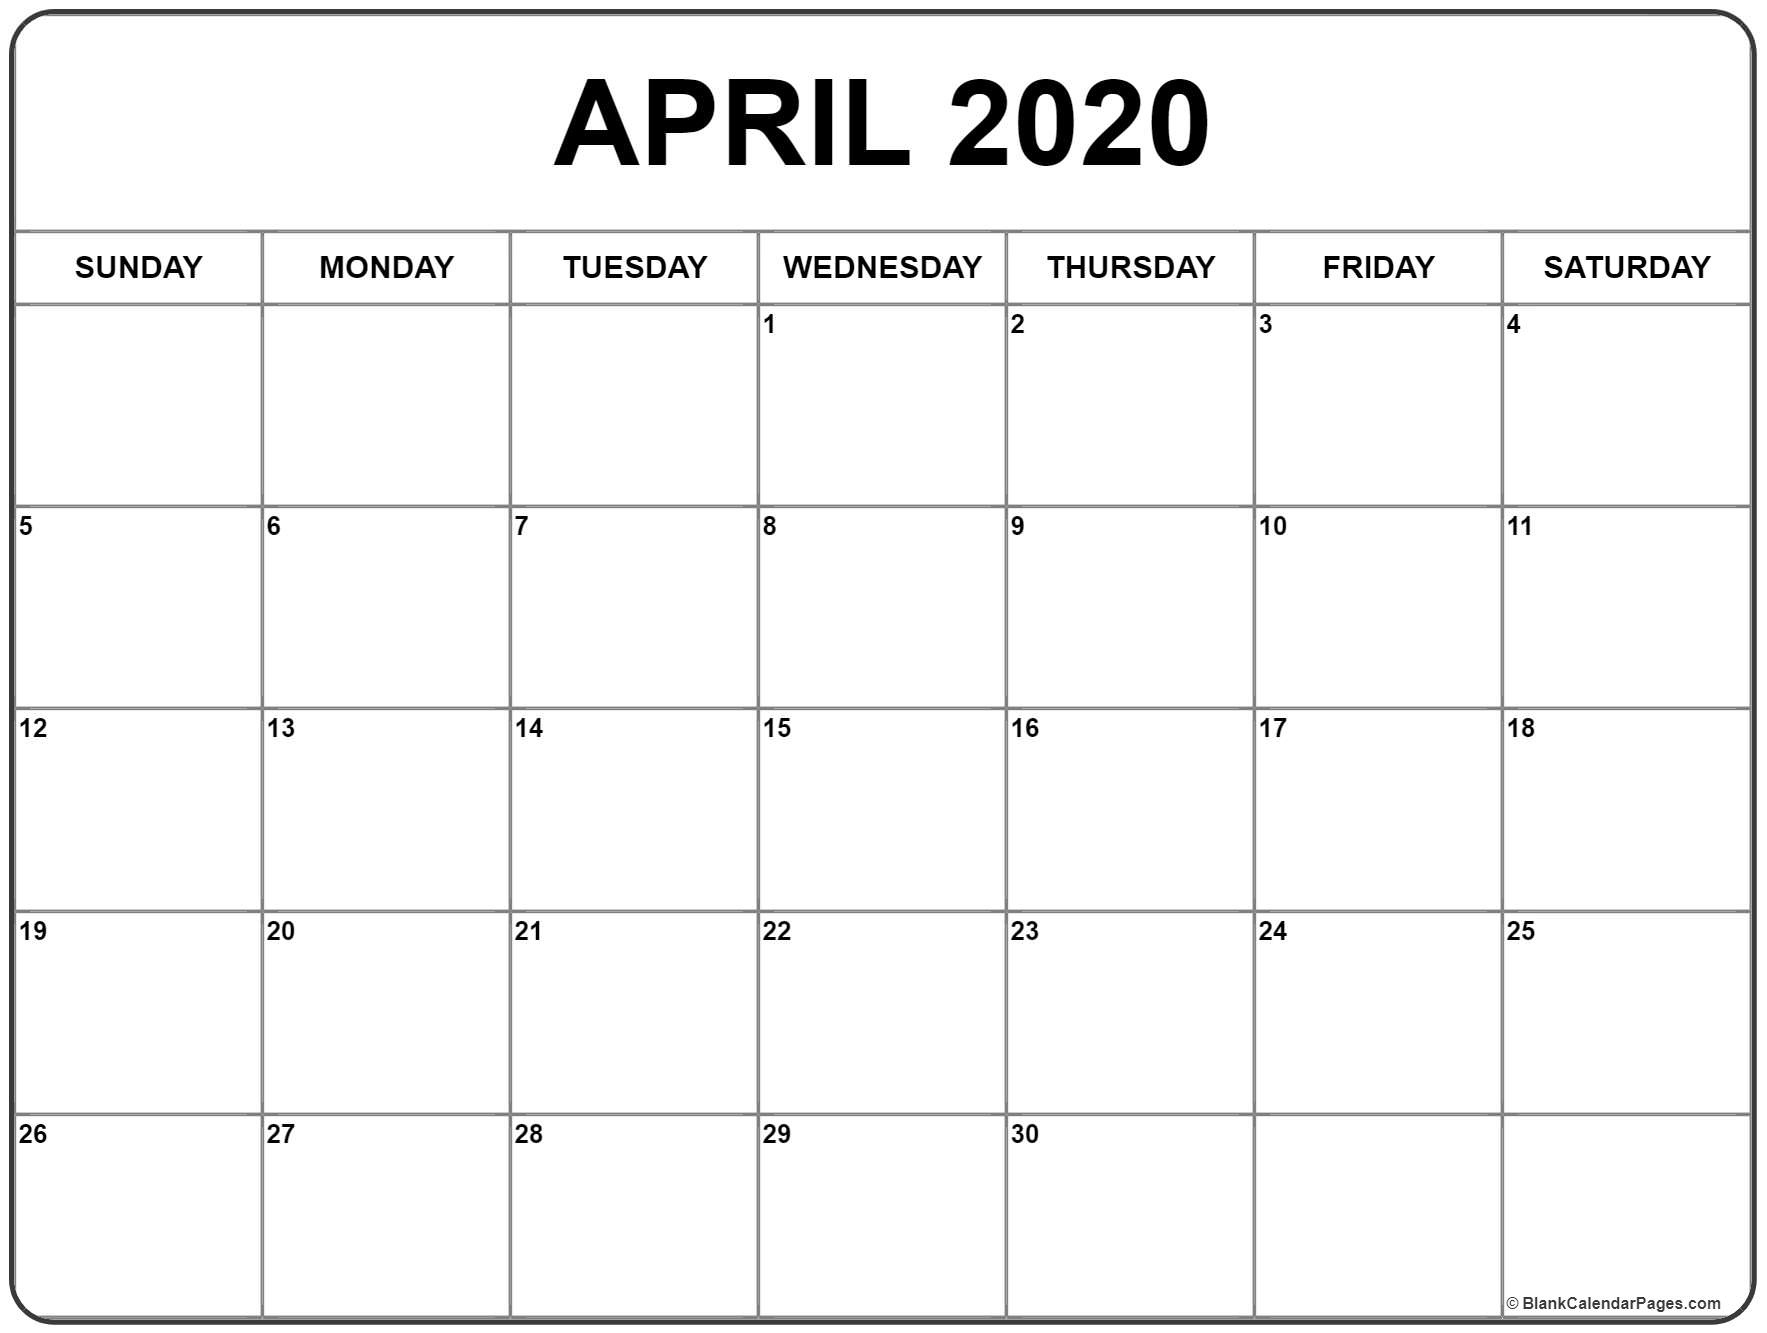 April 2020 Calendar | Free Printable Monthly Calendars_Print A Blank Calendar 2020